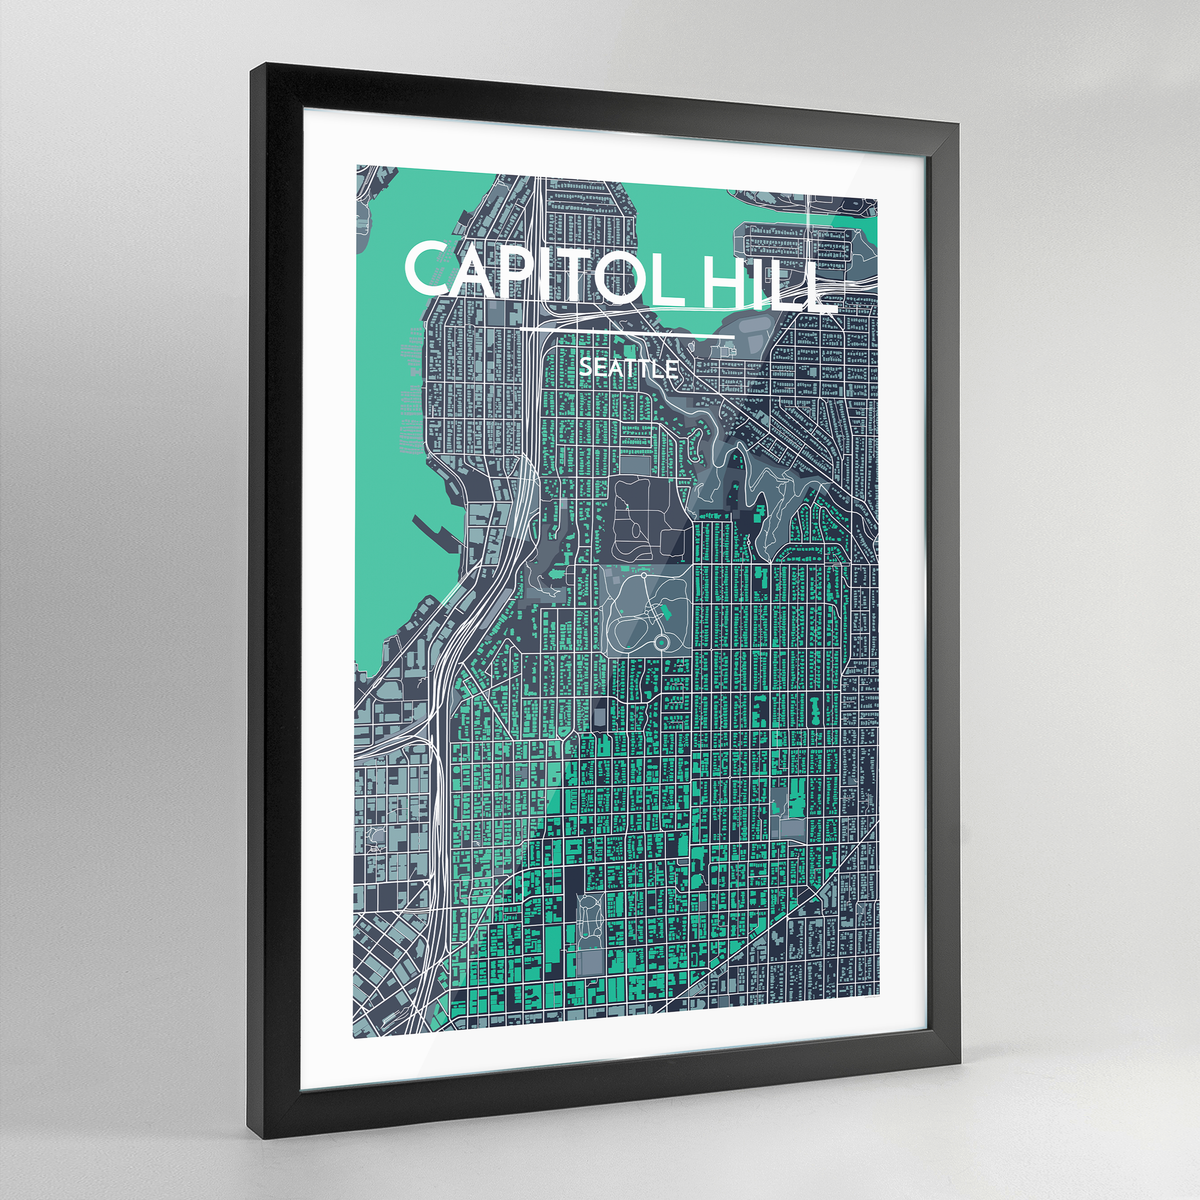 Framed Seattle Capitol Hill Neighbourhood City Map Art Print - Point Two Design